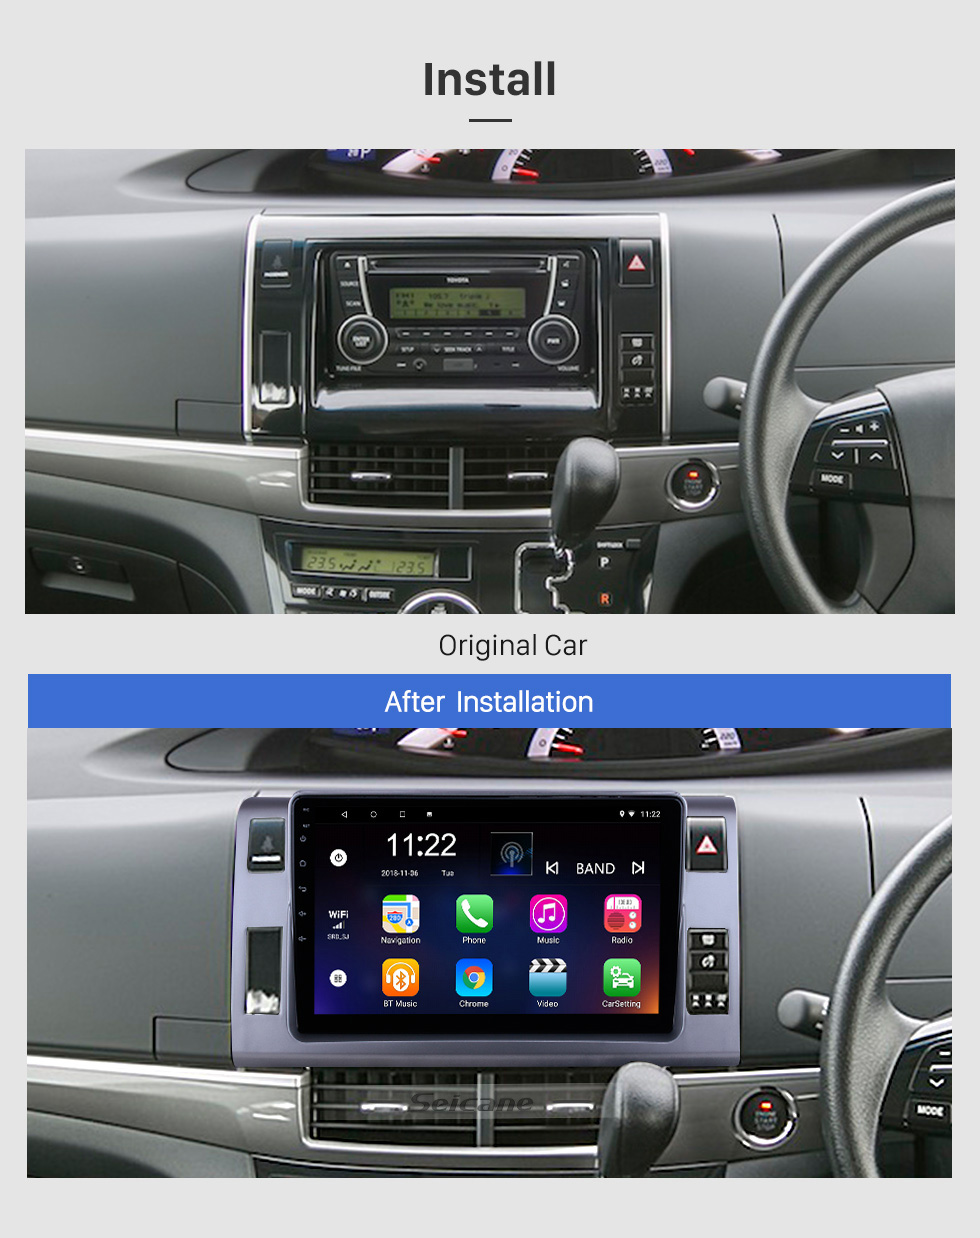 Seicane OEM 10.1 inch Android 10.0 for 2006 Toyota Previa/Estima/Tarago Radio with Bluetooth HD Touchscreen GPS Navigation System support Carplay